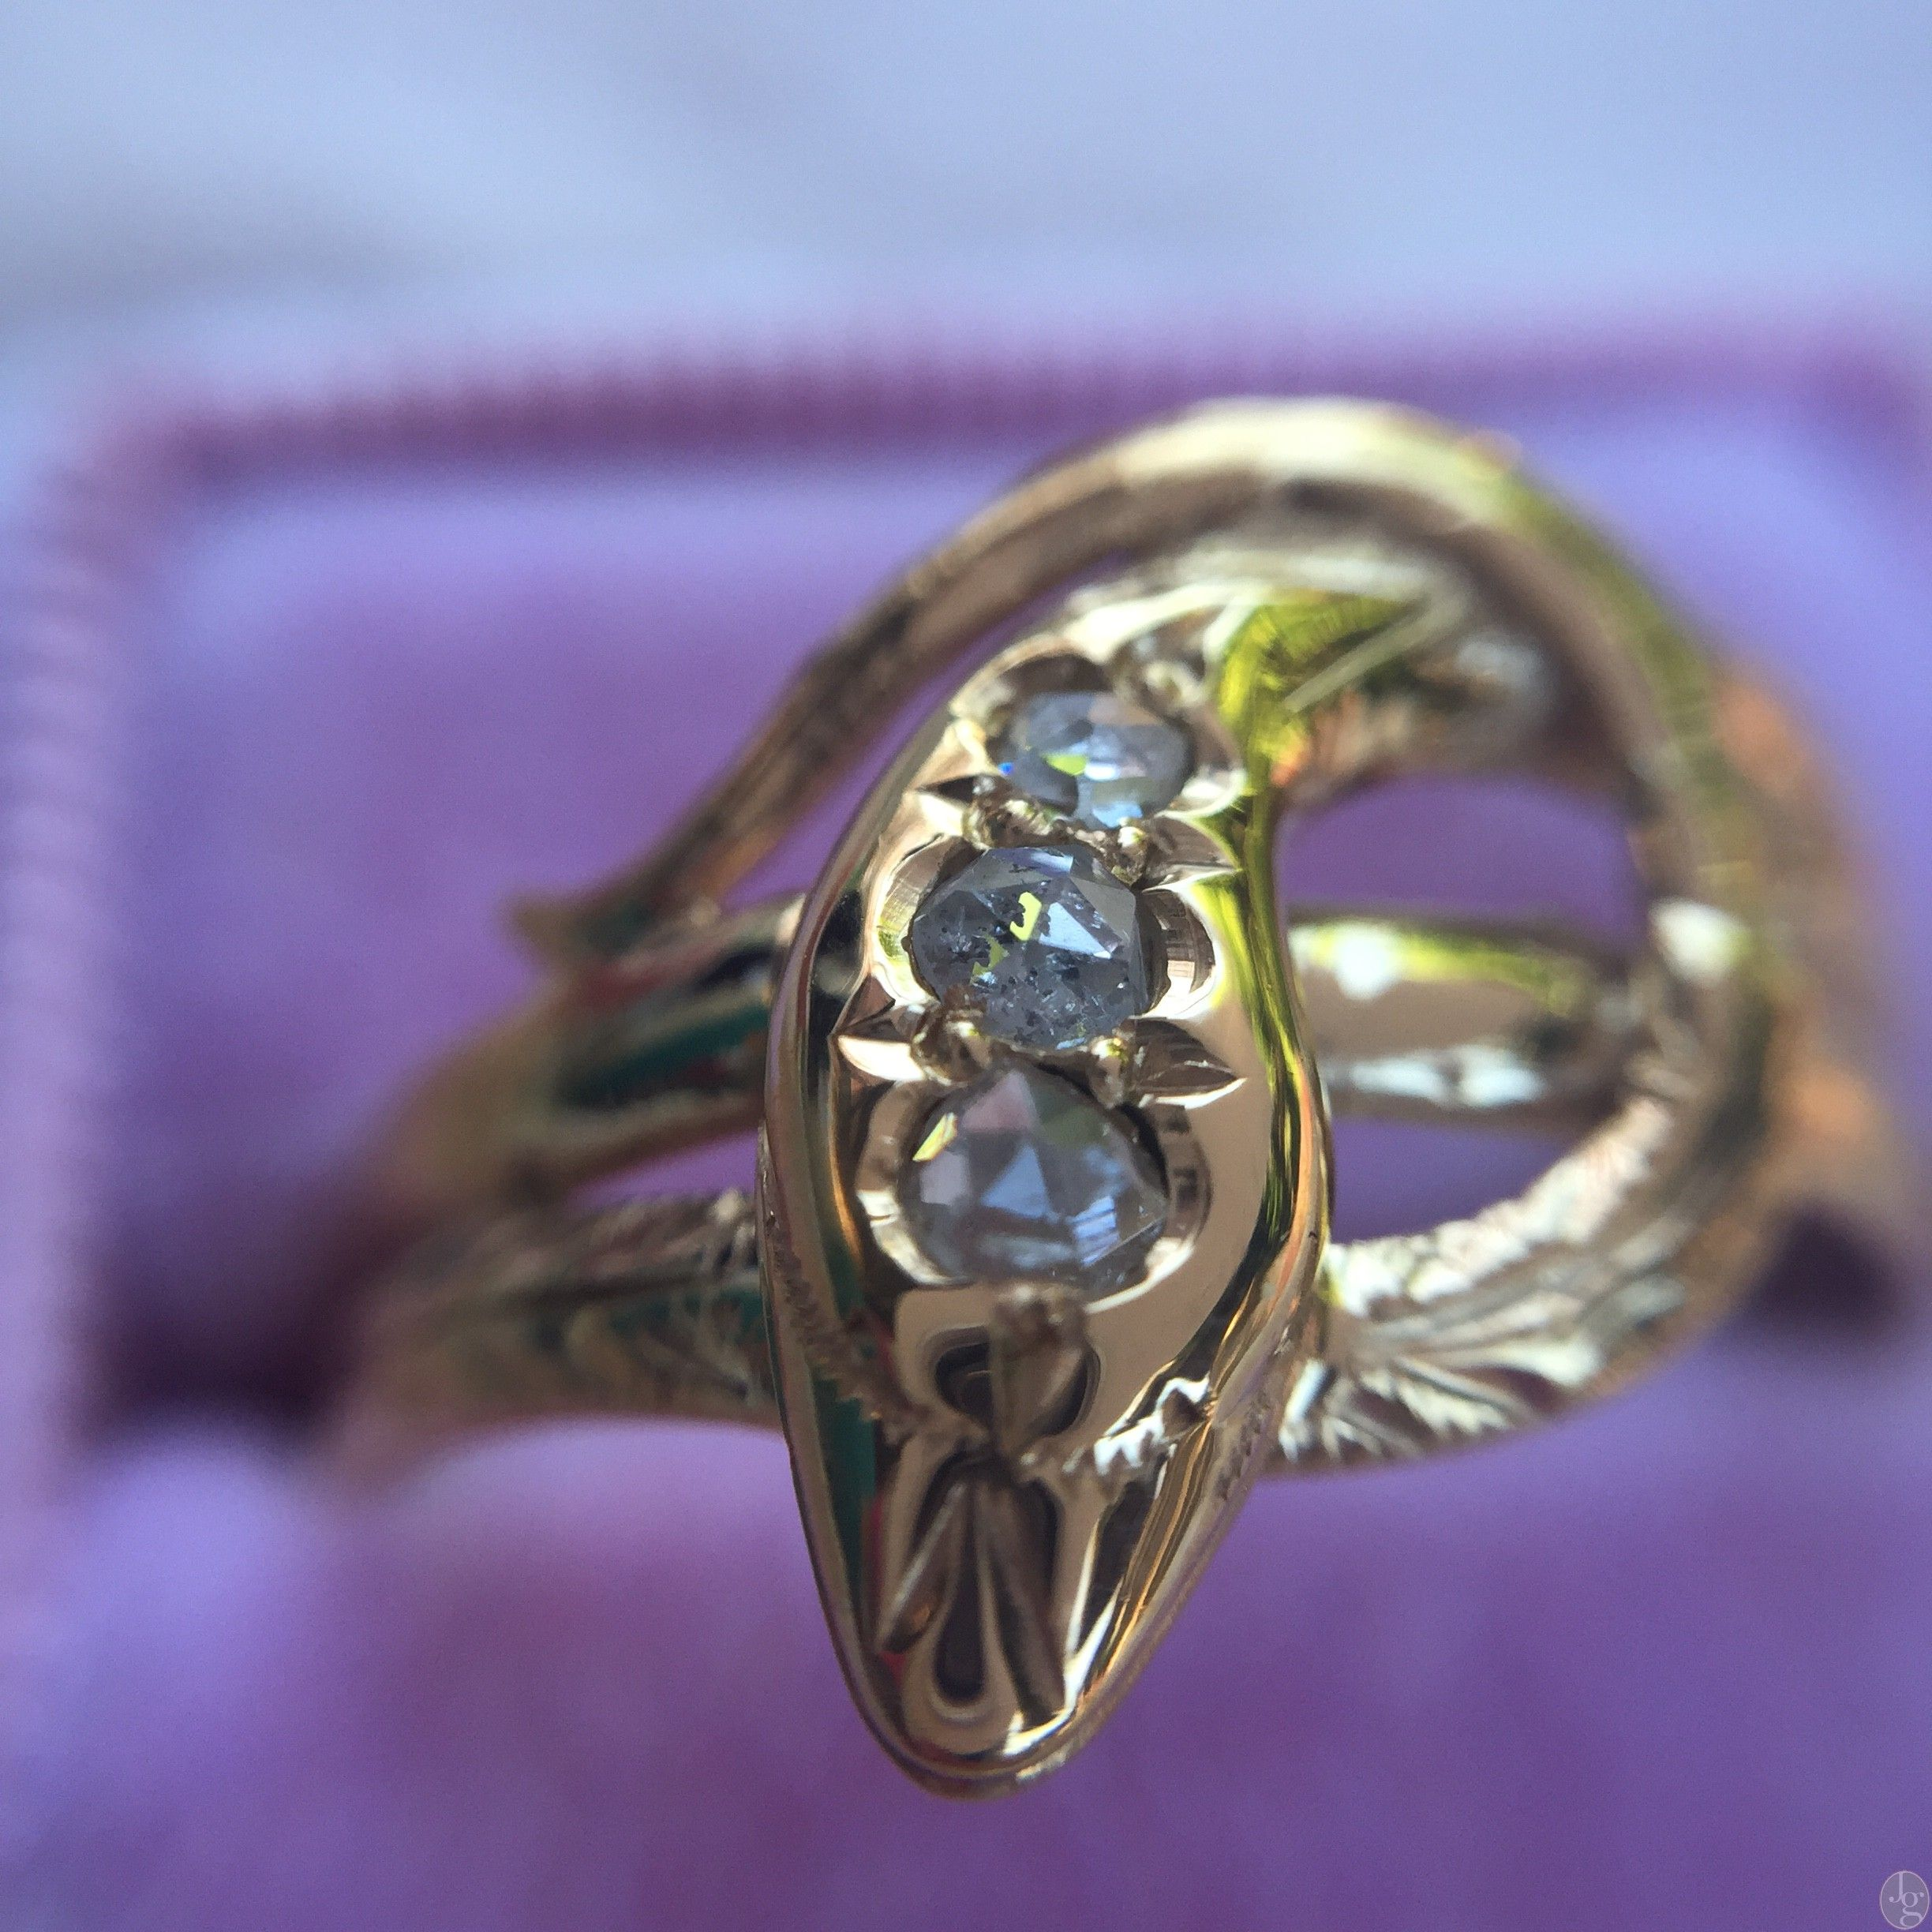 ip silver com walmart green snake in diamond ct ring and serpent gold rings sterling